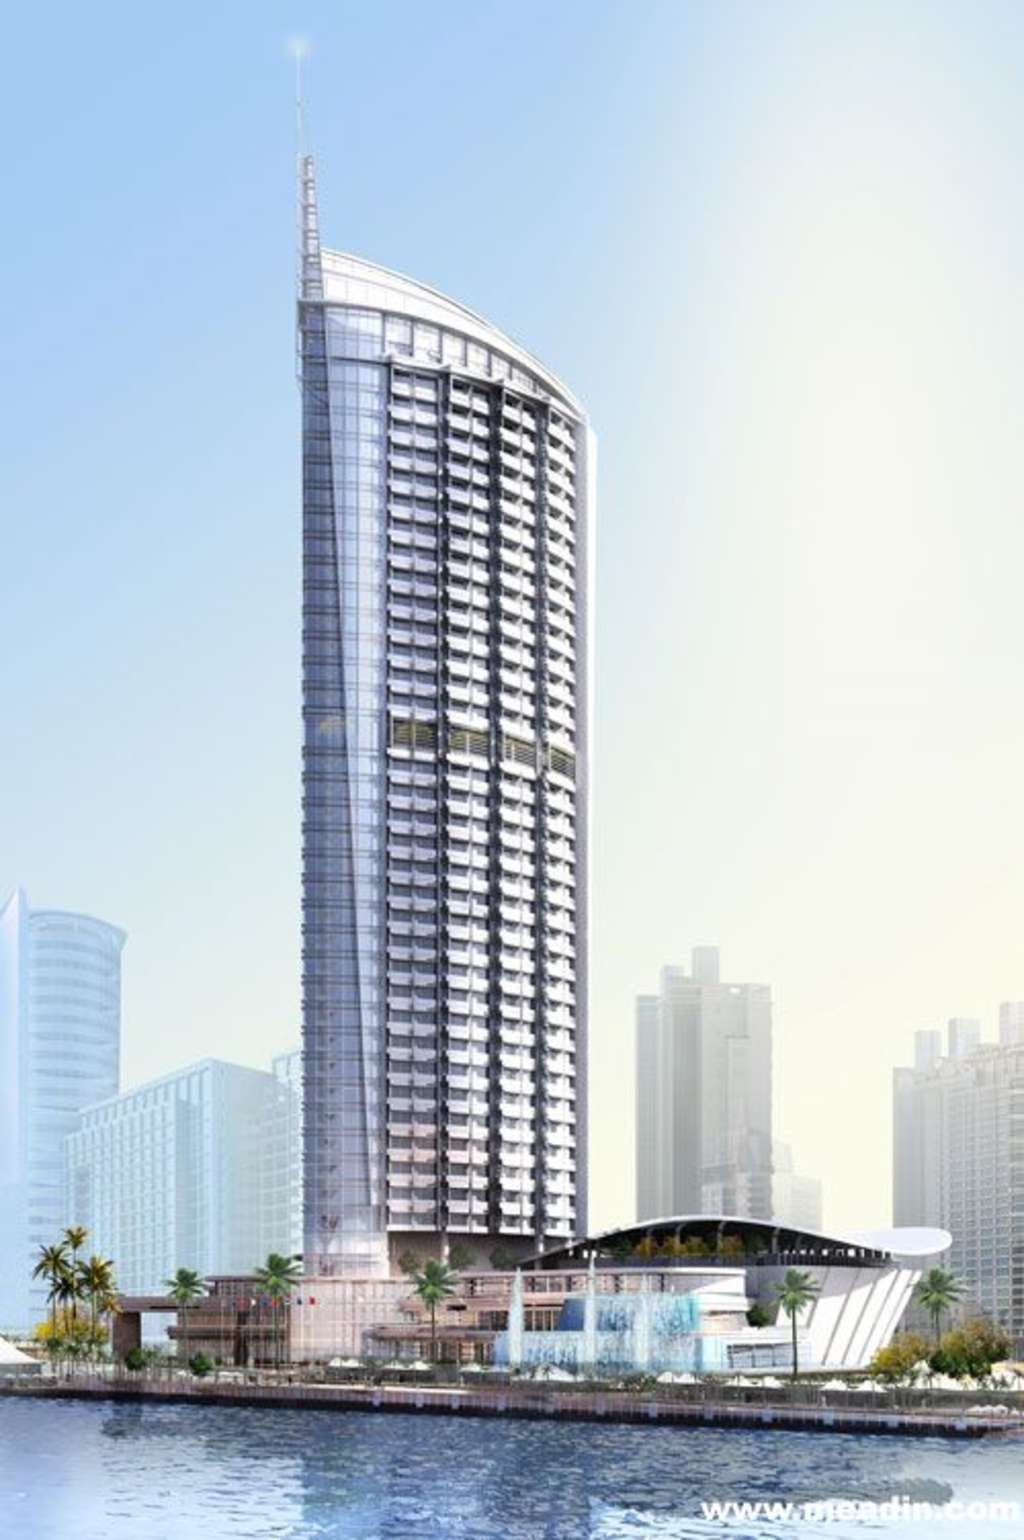 Langham Hospitality Group Marks First Foray Into Qatar With Real Estate Services Group To Develop Langham Place Hotel In Lusail City, Doha